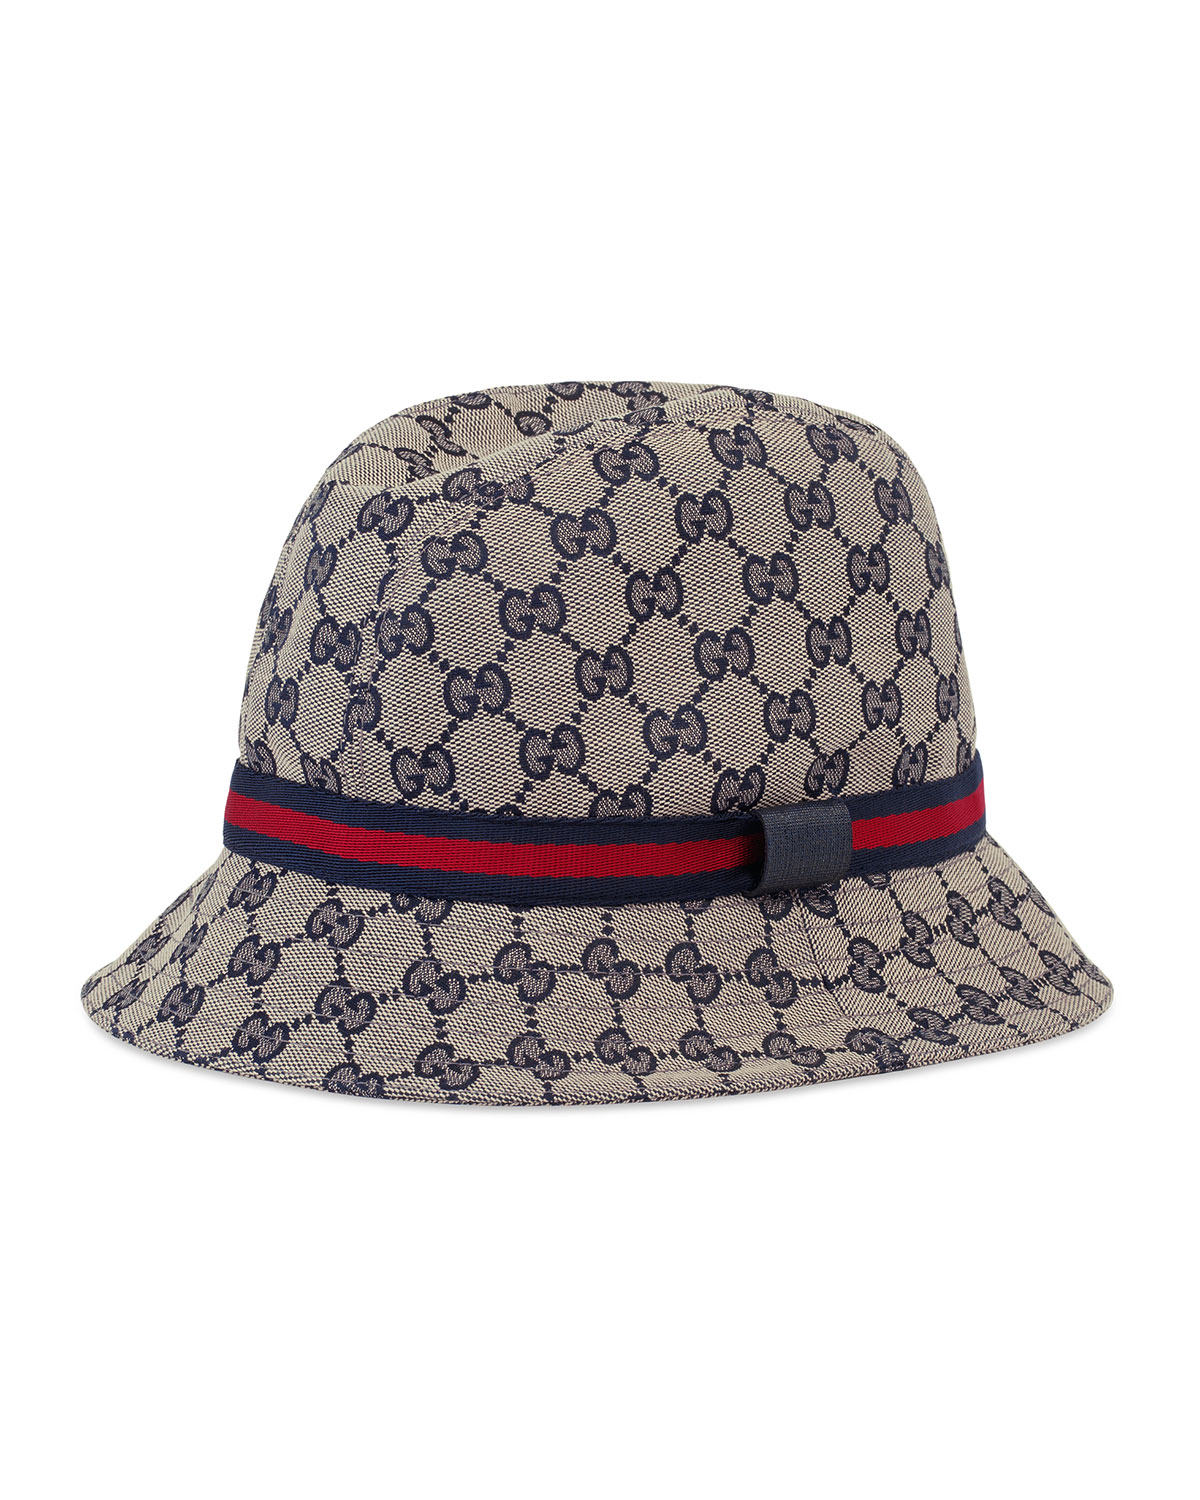 231a4d9d5 Kids' GG Supreme Canvas Bucket Hat w/ Web Hat Band